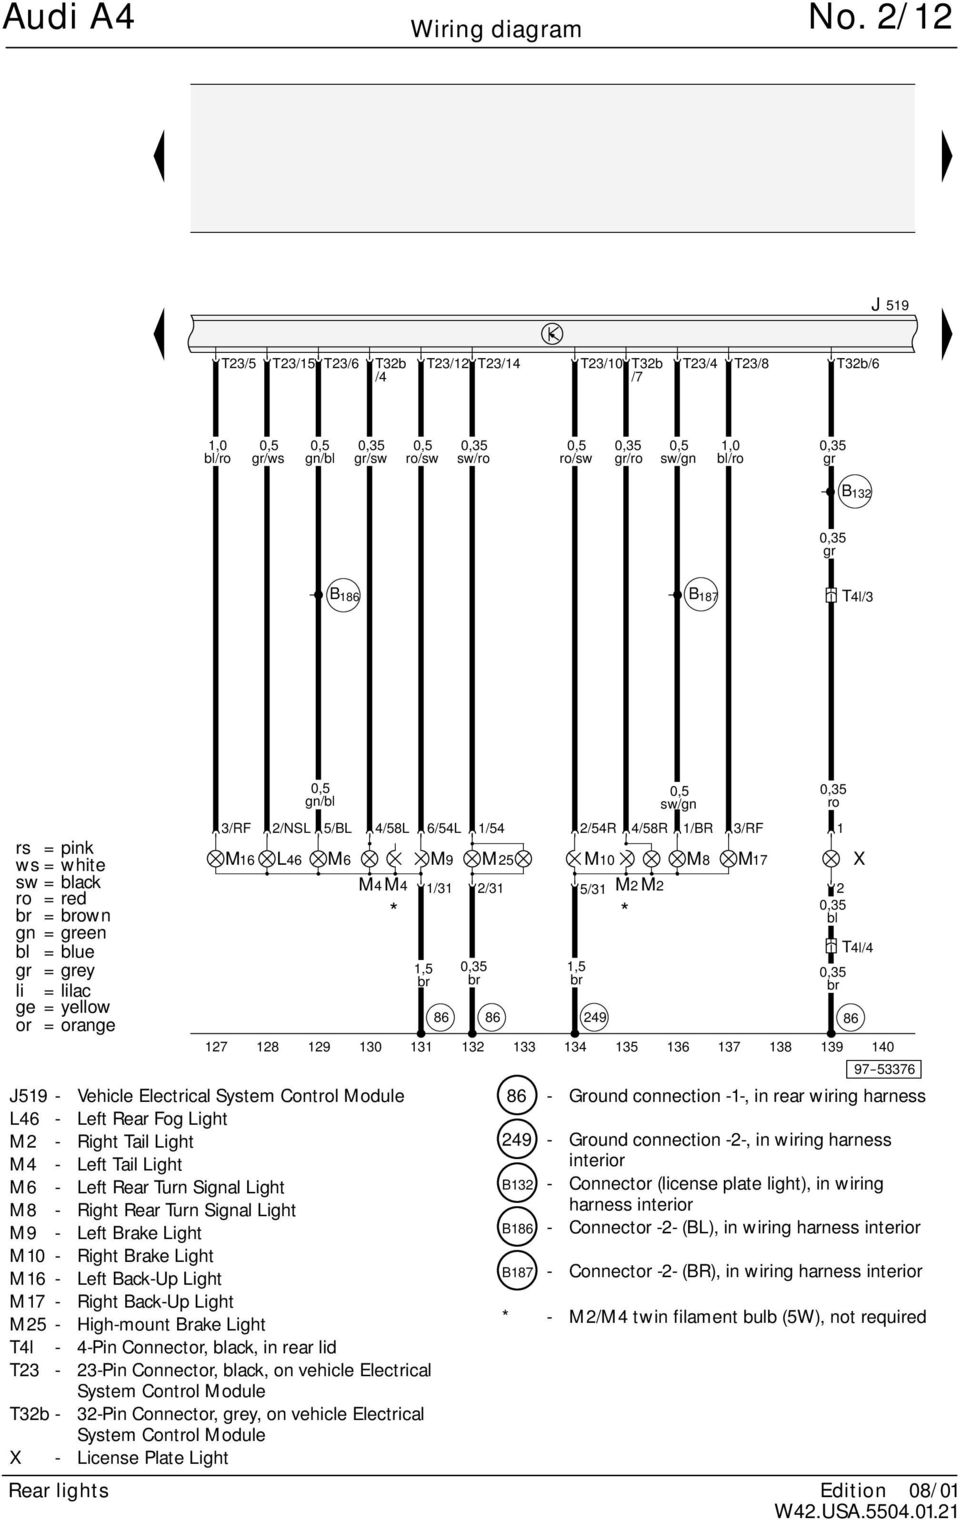 Audi A4 No 2 1 Standard Equipment Wiring Diagram From 2002 M Y 1997 Outback Fog Lamp 54 5 86 Gn 54r 4 58r Br 7